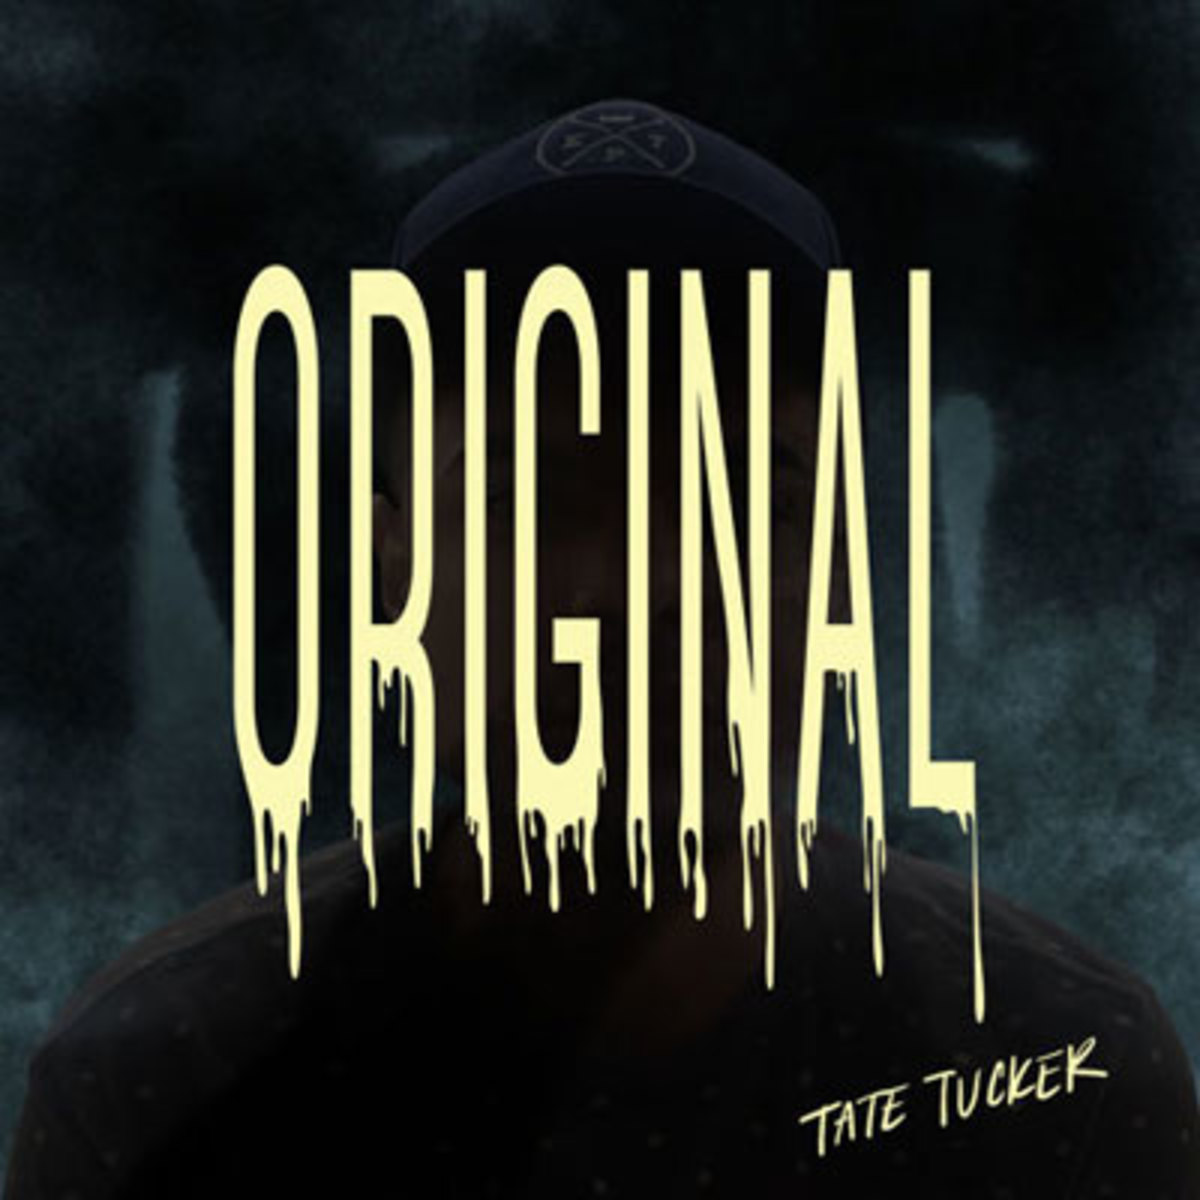 tate-tucker-original.jpg